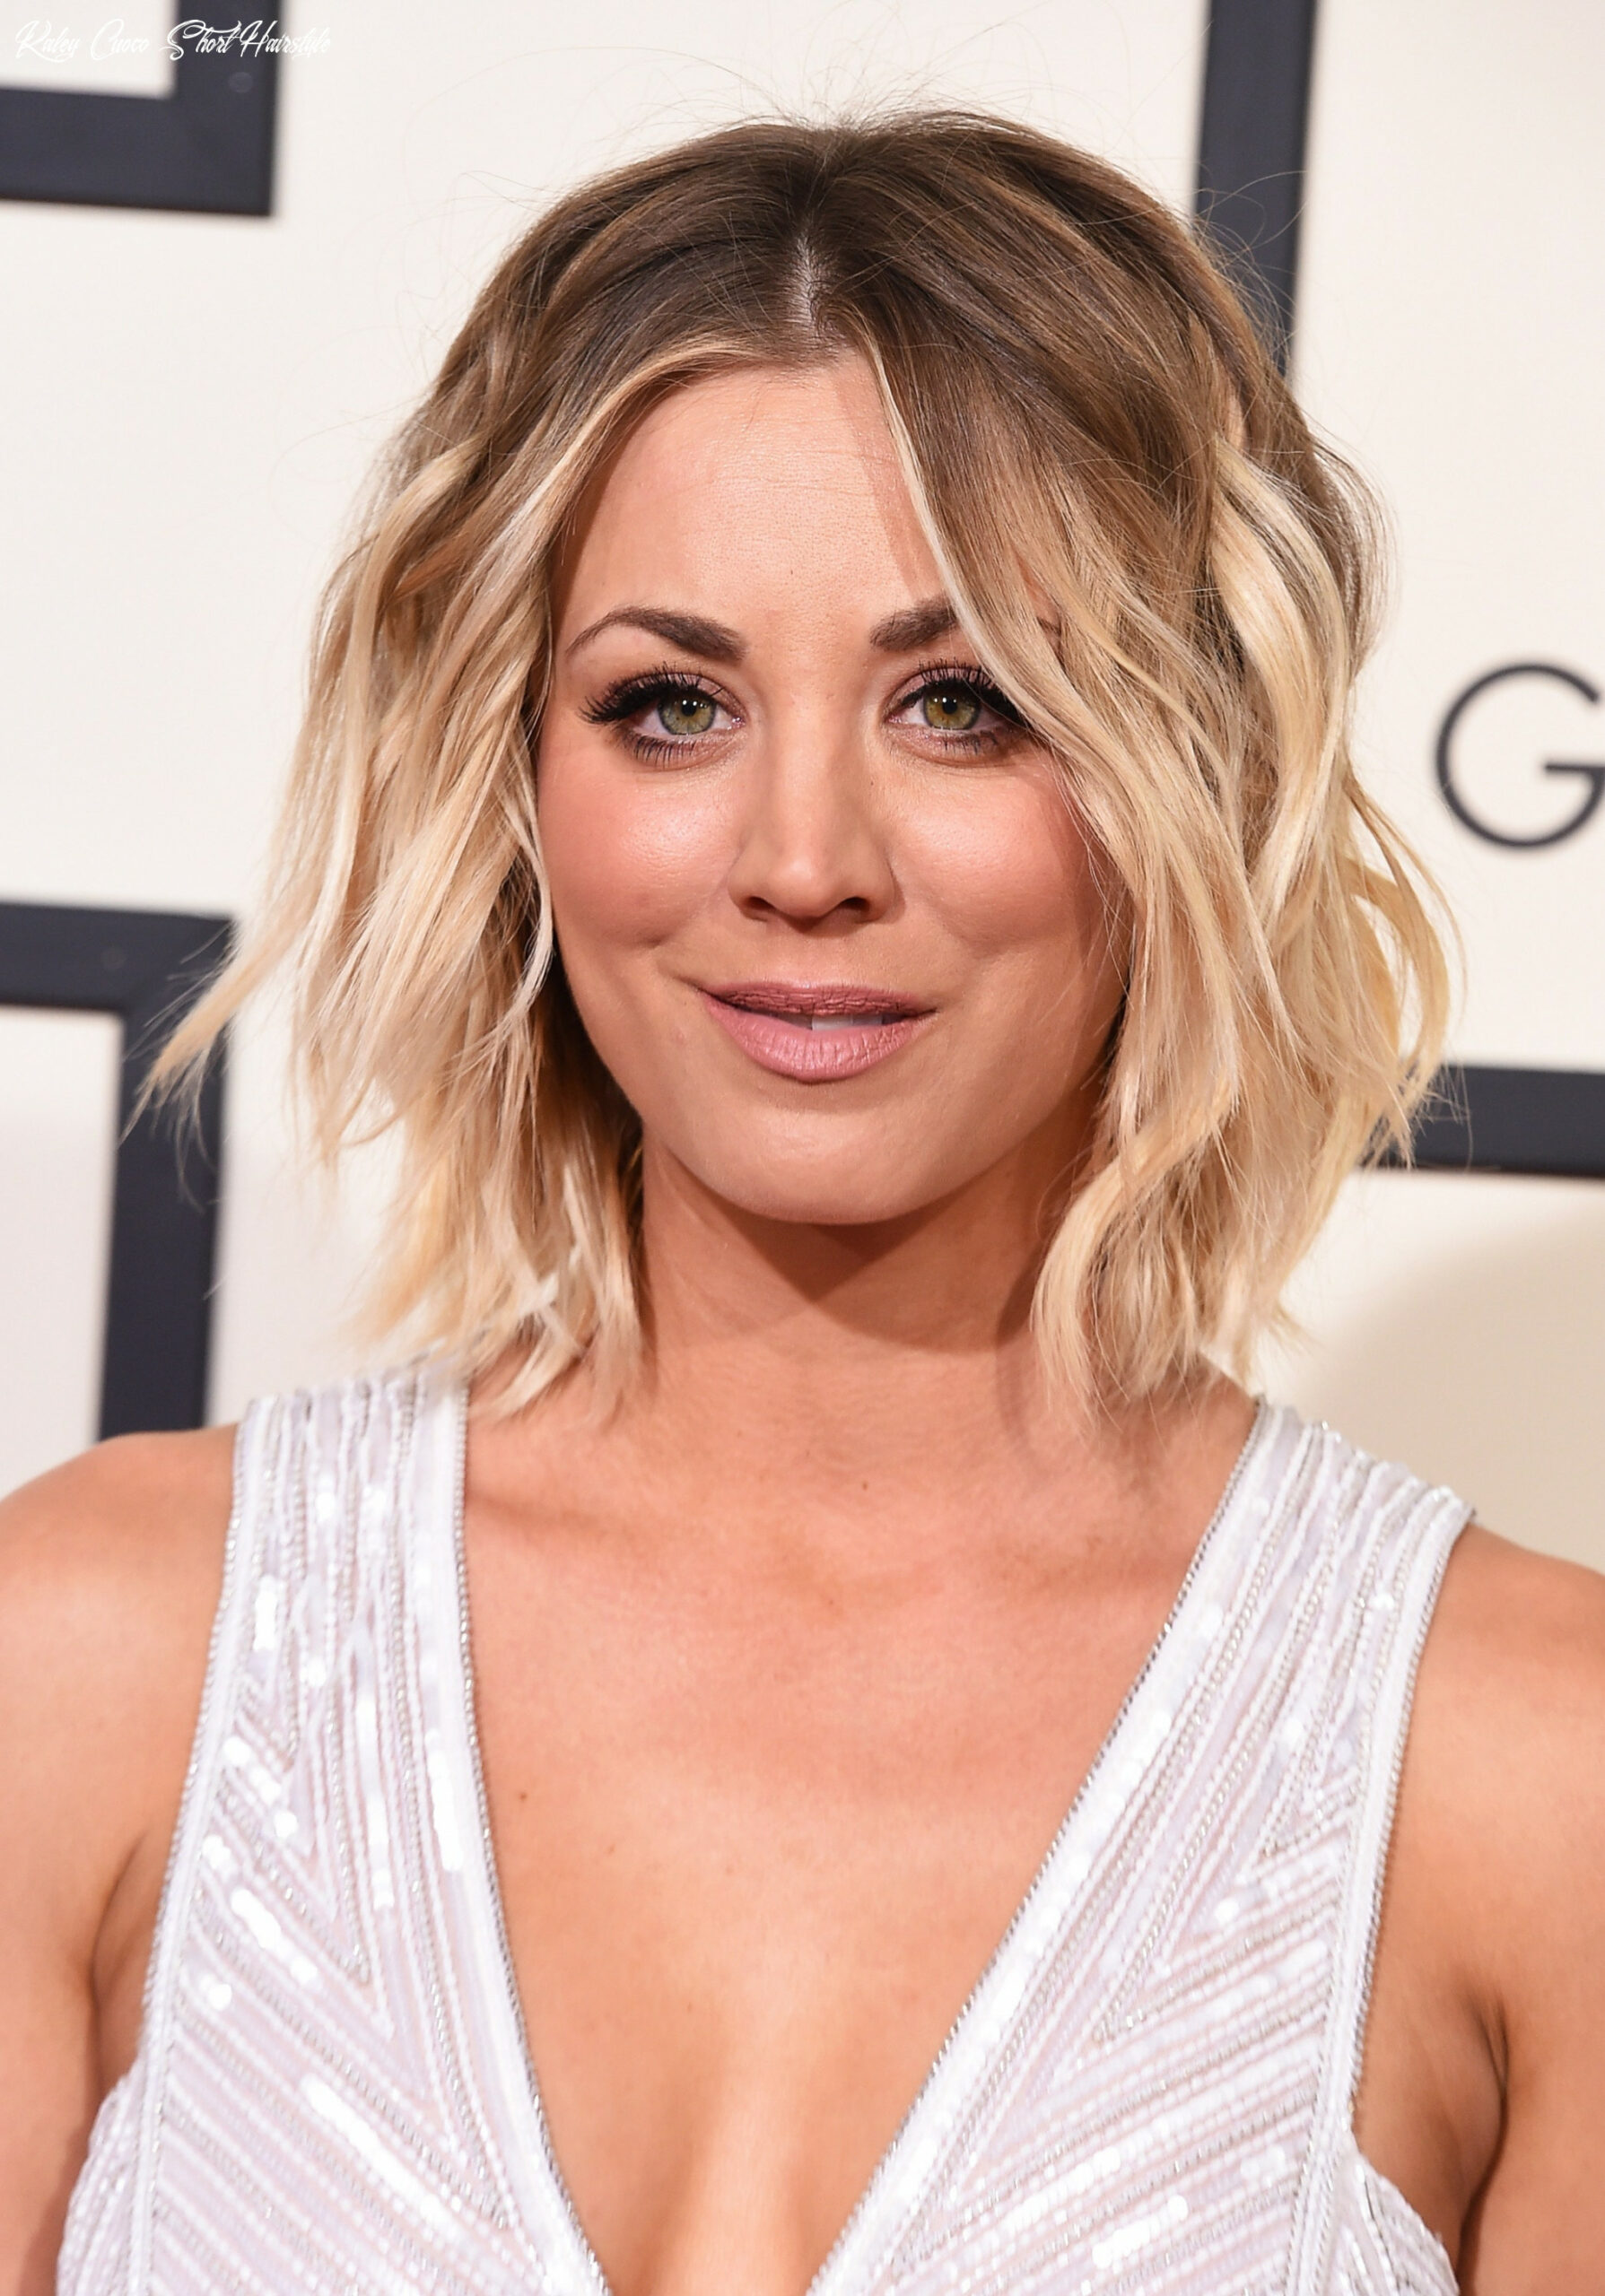 Kaley cuoco hair evolution: see how she grew out her pixie | glamour kaley cuoco short hairstyle